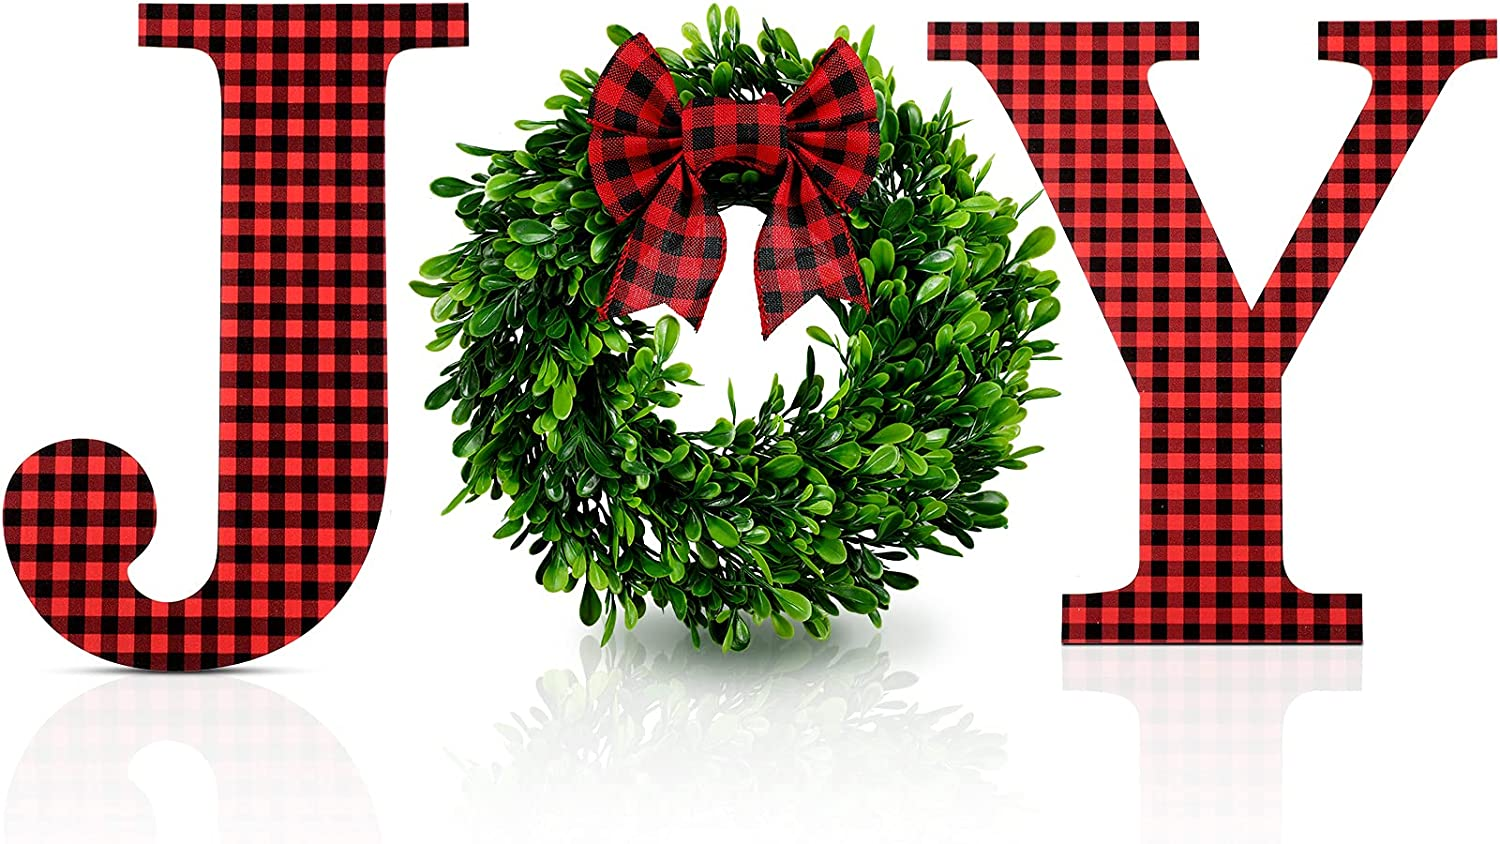 12 Inch Christmas Joy Home Sign Wooden Joy Letter Sign Wall Decor Buffalo Plaid Wall Hanging Letter Faux Green Farmhouse Wreath Large Joy Sign with Plaid Bow for Indoor Outdoor Decor (Red-Black)